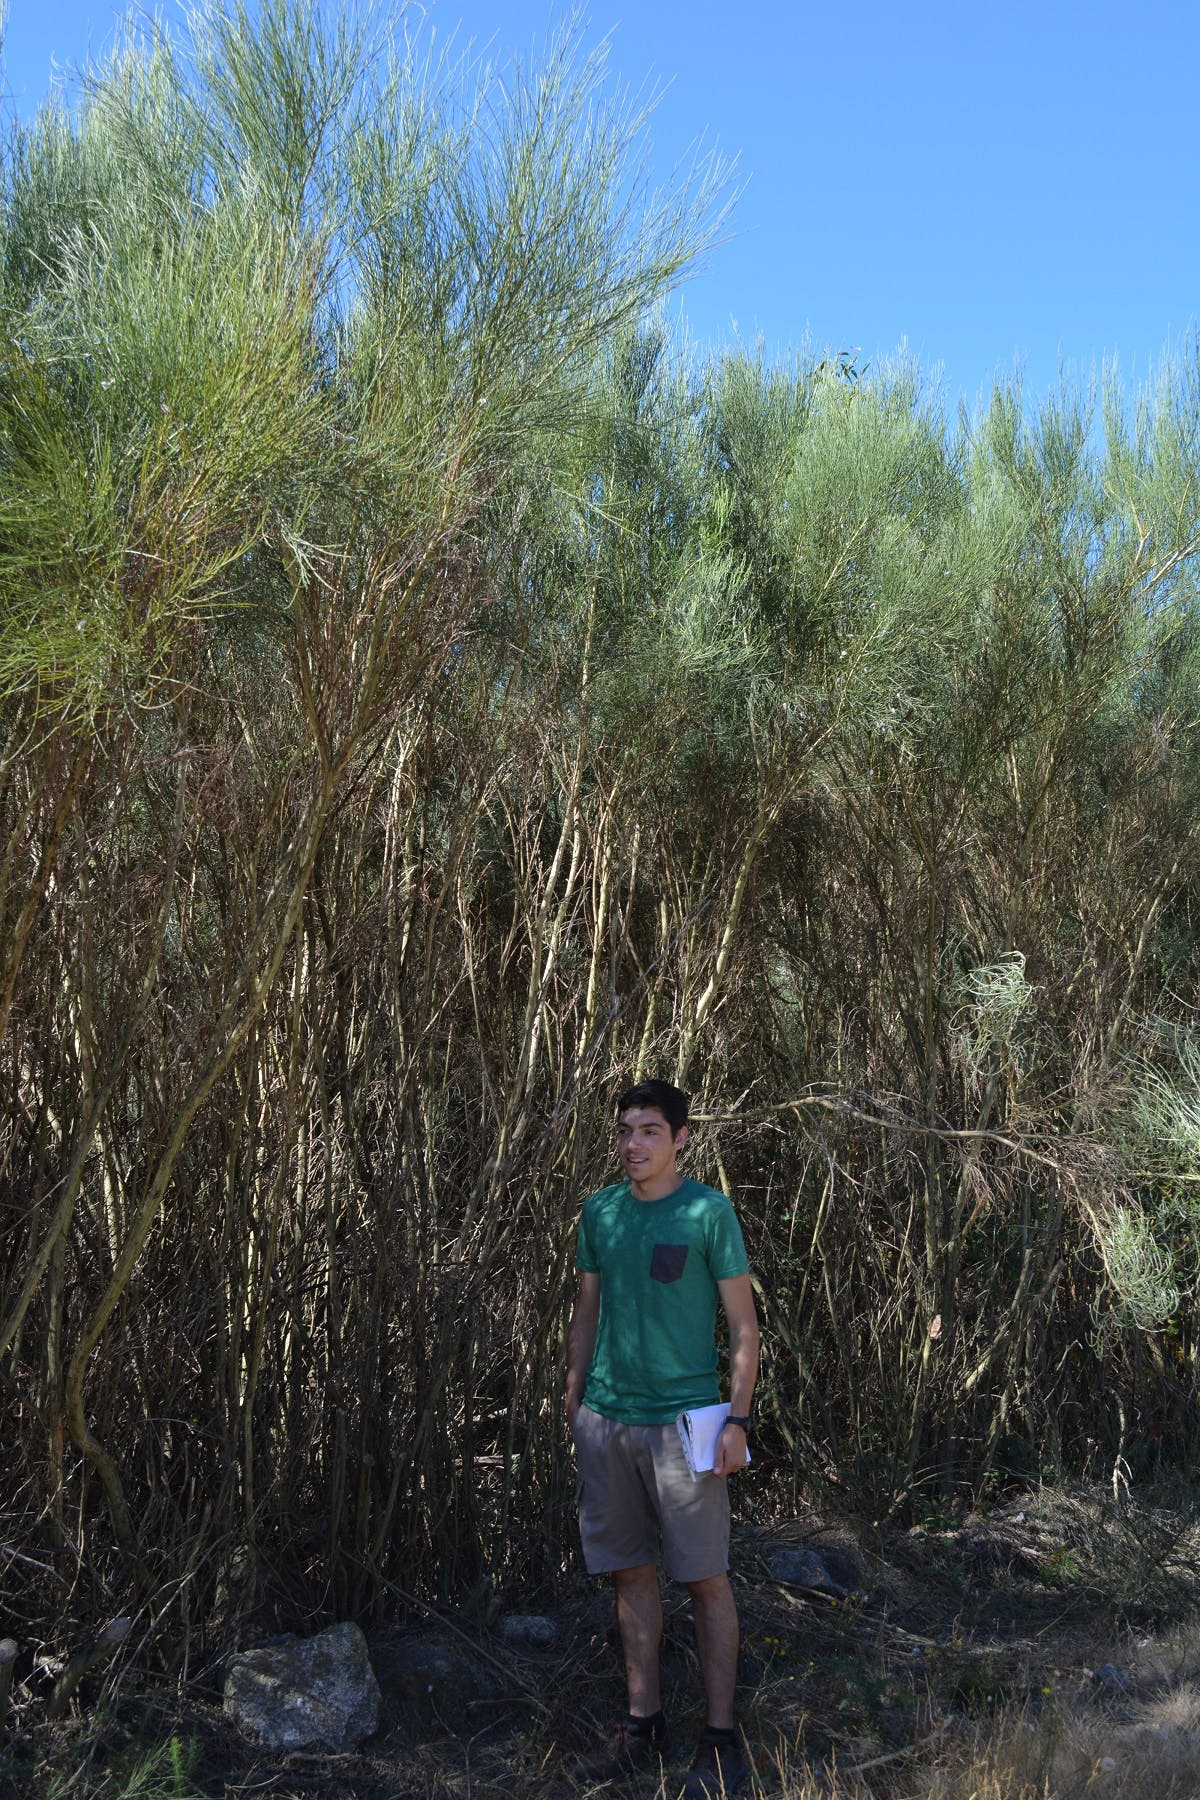 A forest engineer stands next to 3 metre tall Portuguese broom. This dominant, dry dense species is perfect fuel for Portugal's wildfires.